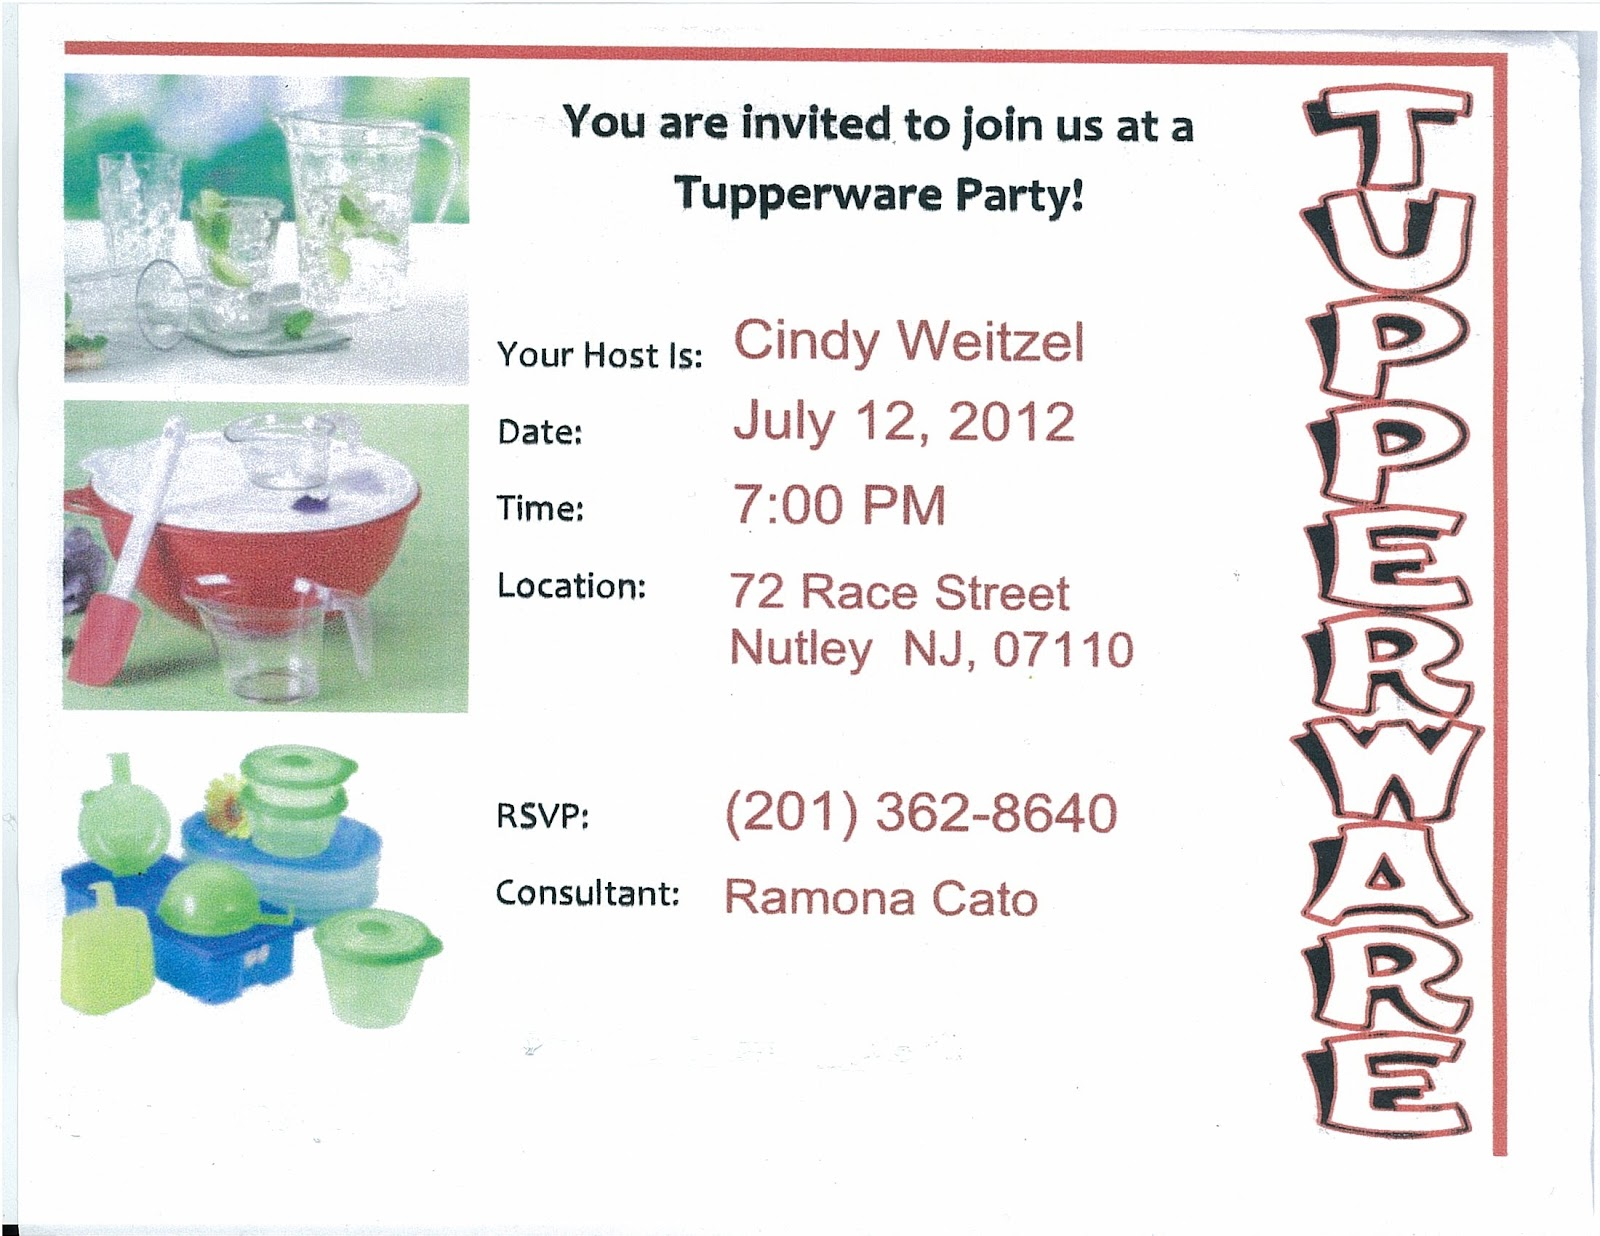 TUPPERWARE PARTY INVITATION WORDING